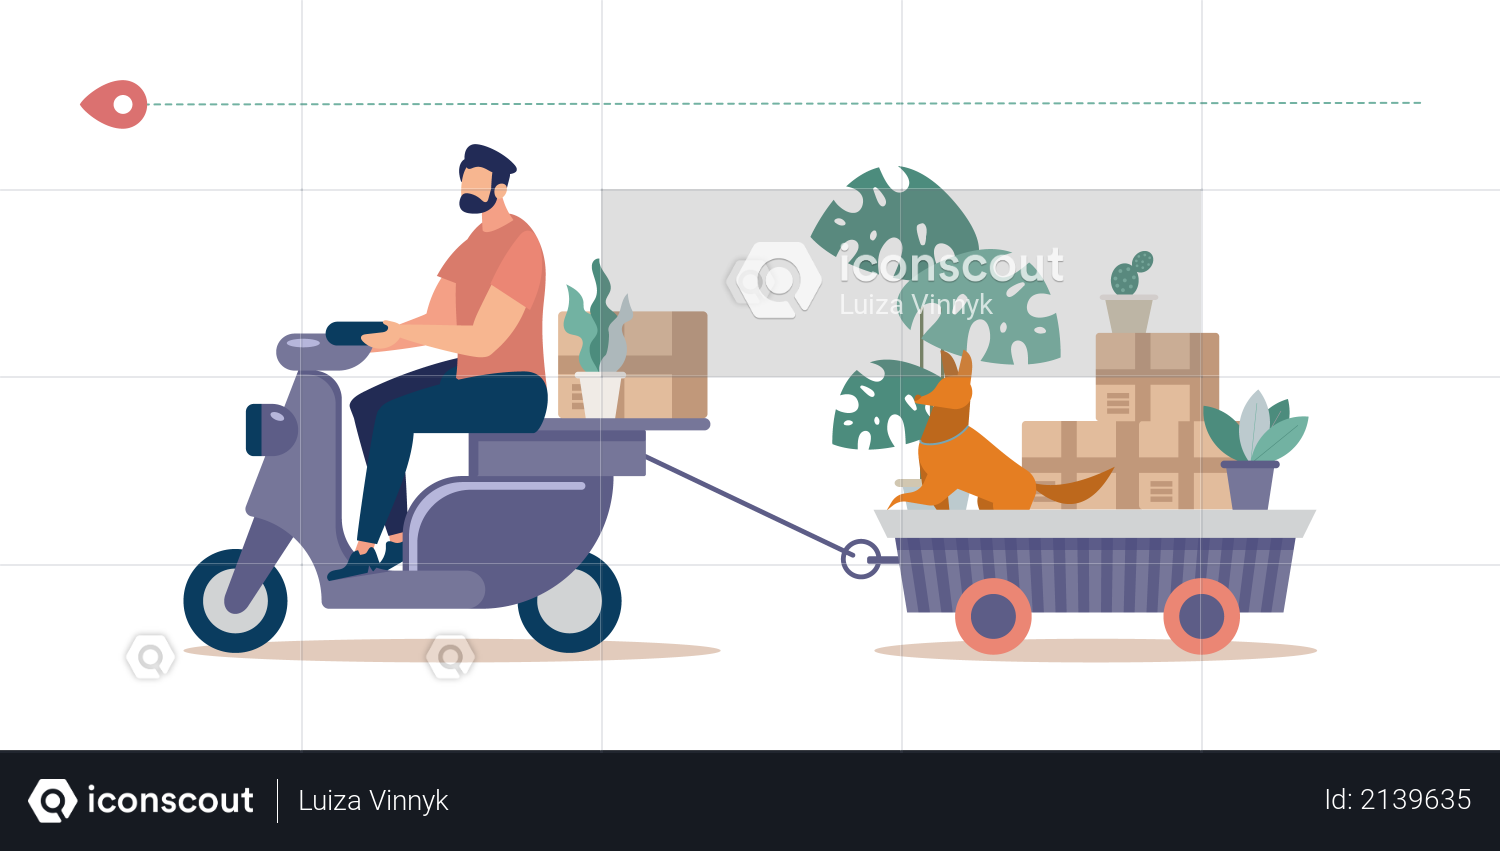 Man Riding Motor Scooter, Pulling Trailer Full of Home Stuff and Things Packed in Cardboard Boxes, Flowerpots with Live Plants and Dog Illustration